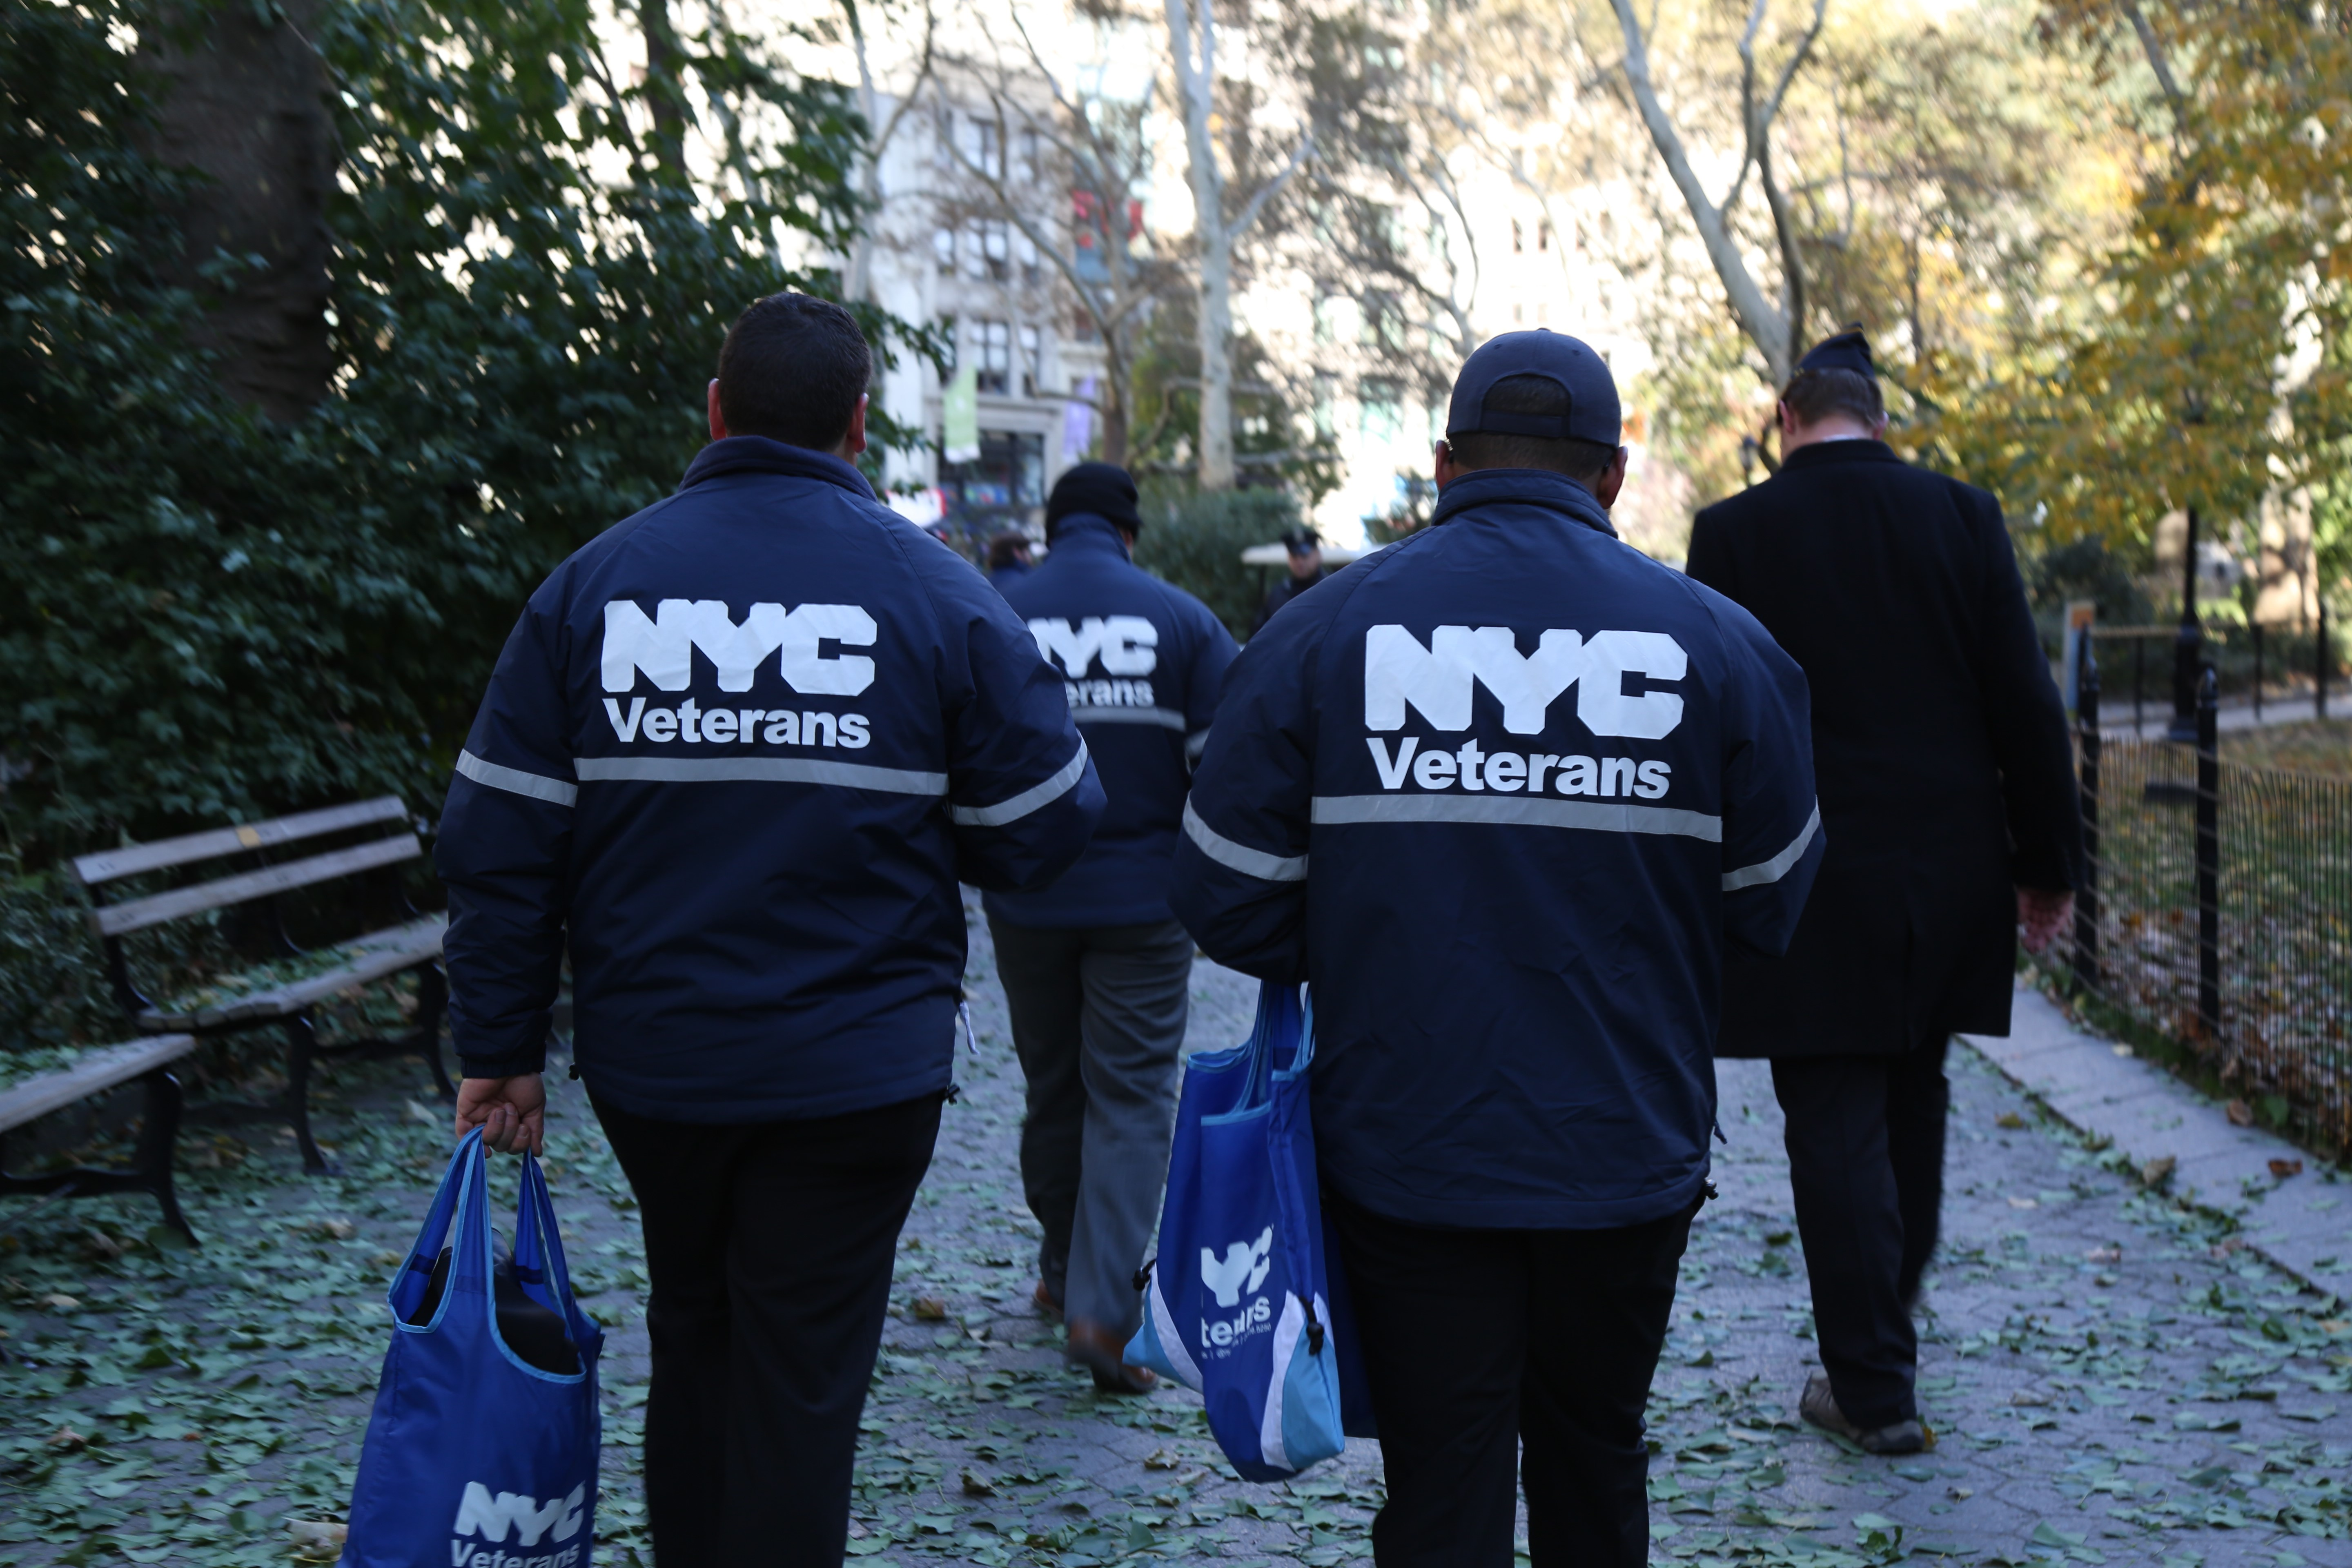 DVS staff walking during Veterans Day activities, their backs facing the camera showing NYC Veterans logo on their jackets.